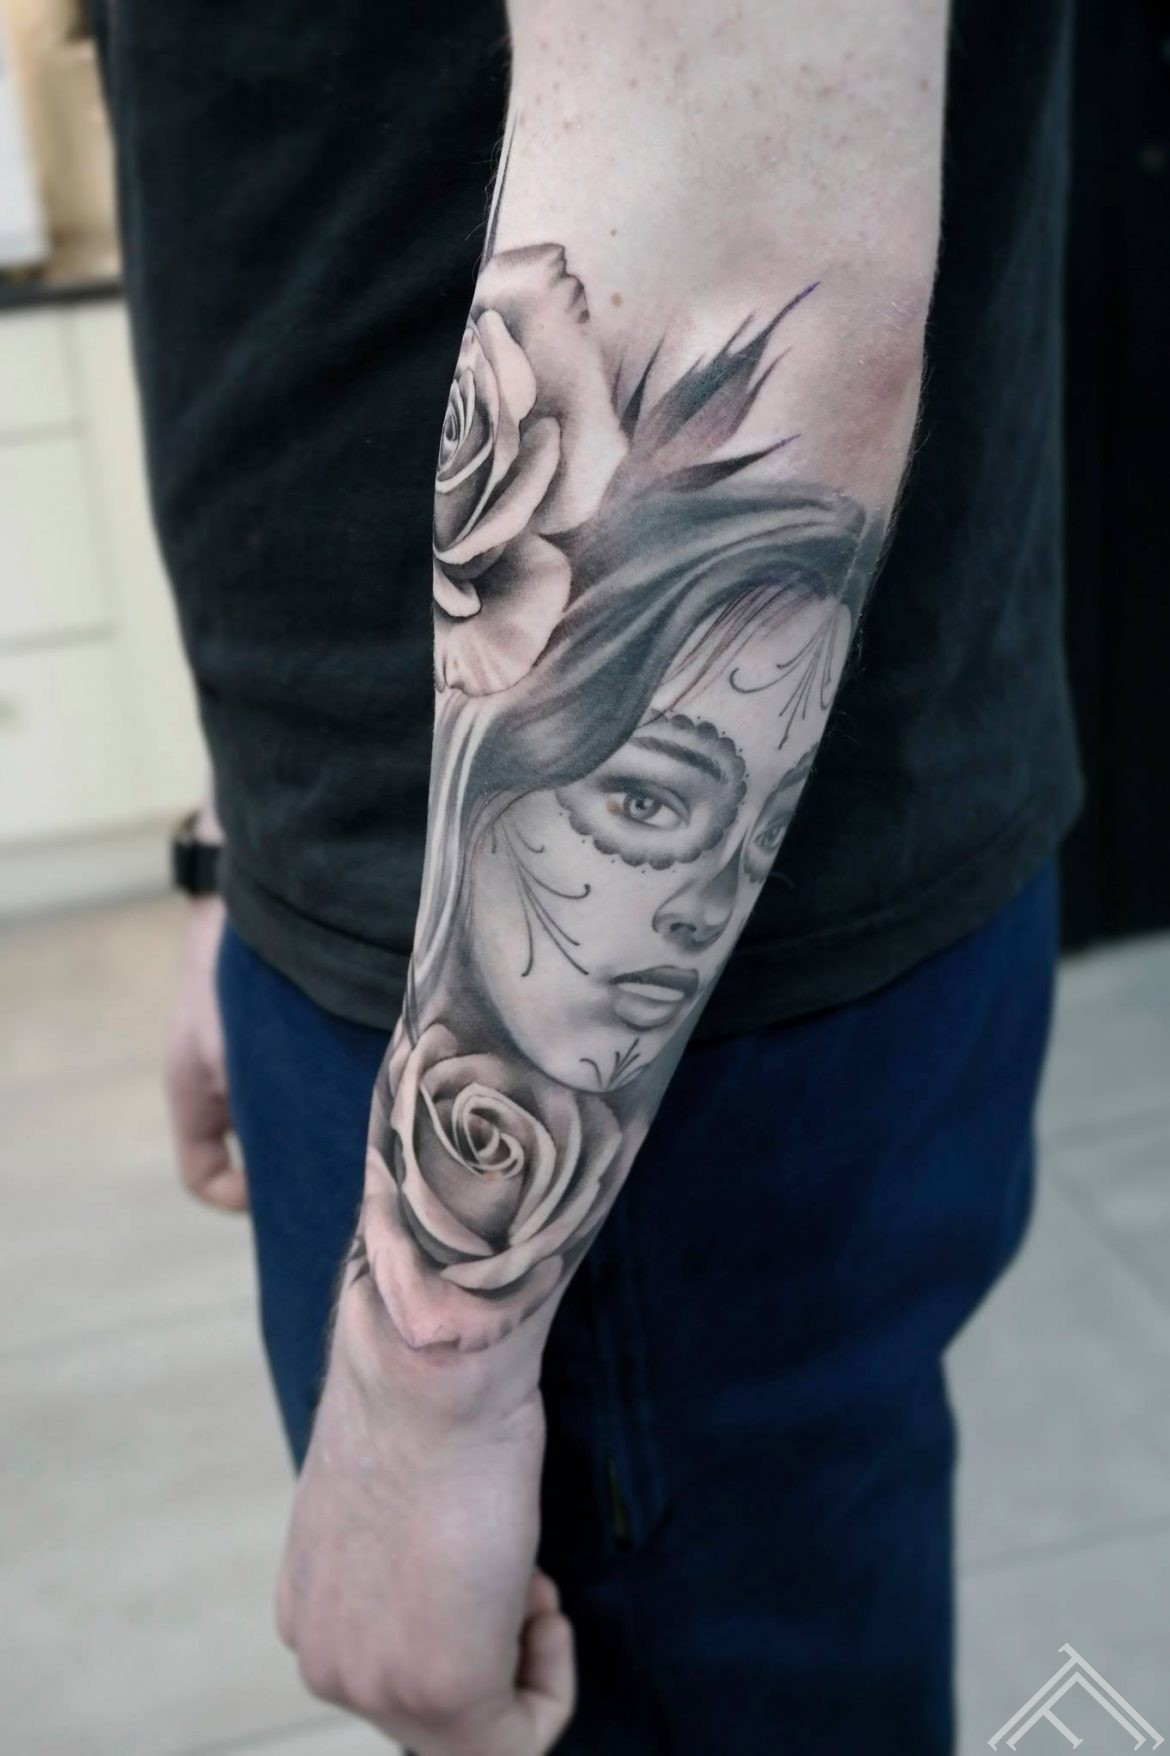 muerte-rose-rozes-tetovejums-tattoo-tattoofrequency-riga-janissvars